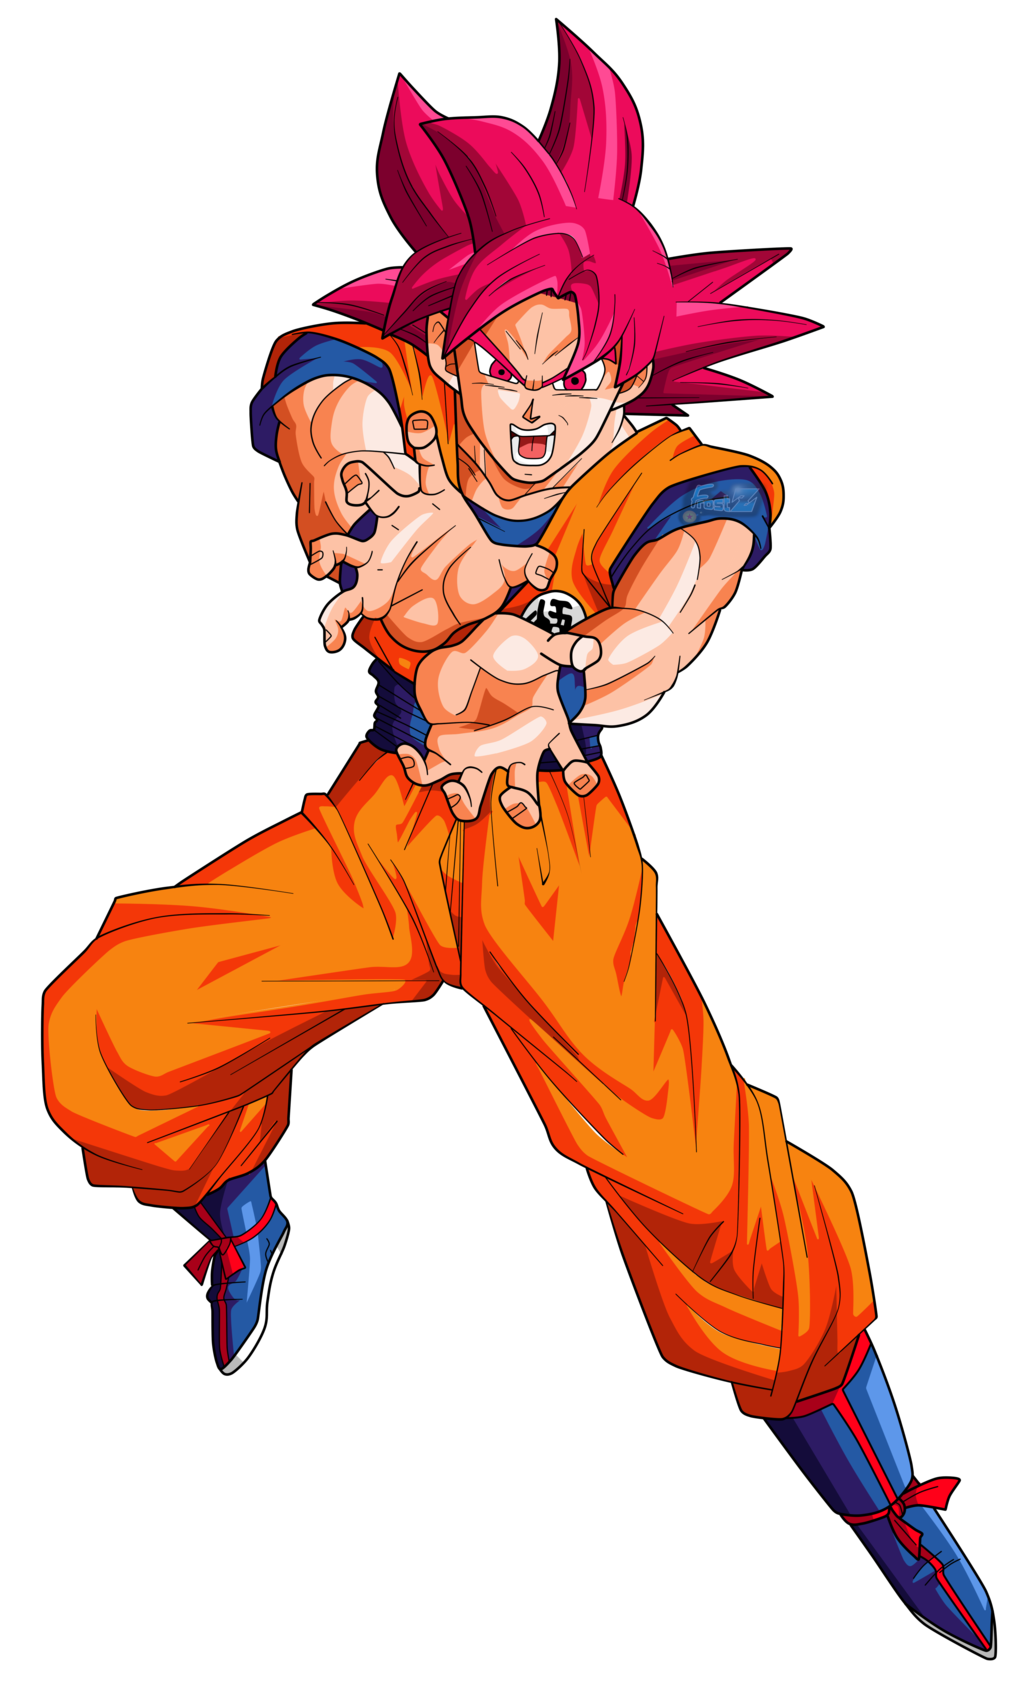 Goku super saiyan god png. Image by frost z